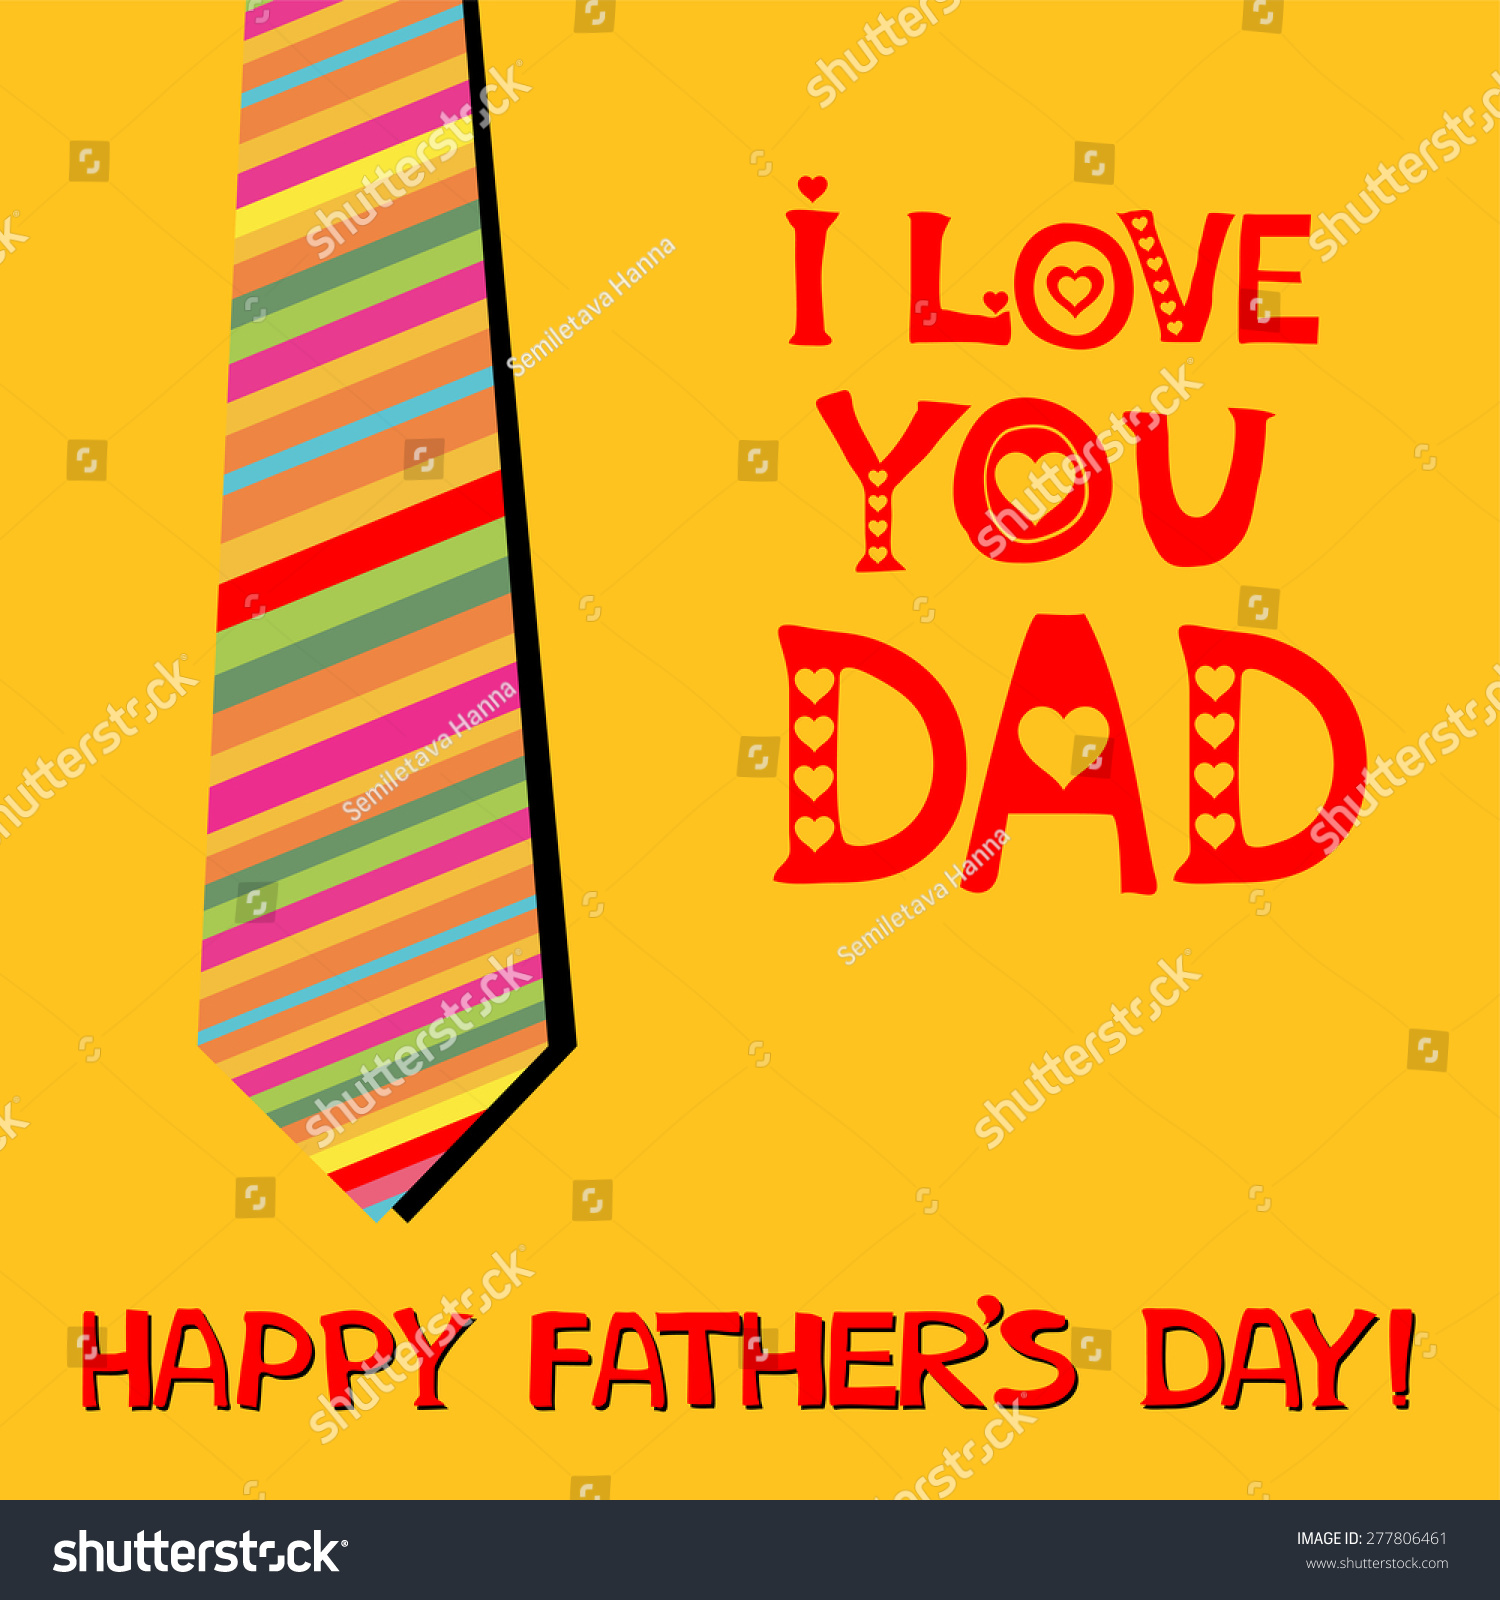 Love You Dad Greeting Card Happy Stock Vector 277806461 Shutterstock